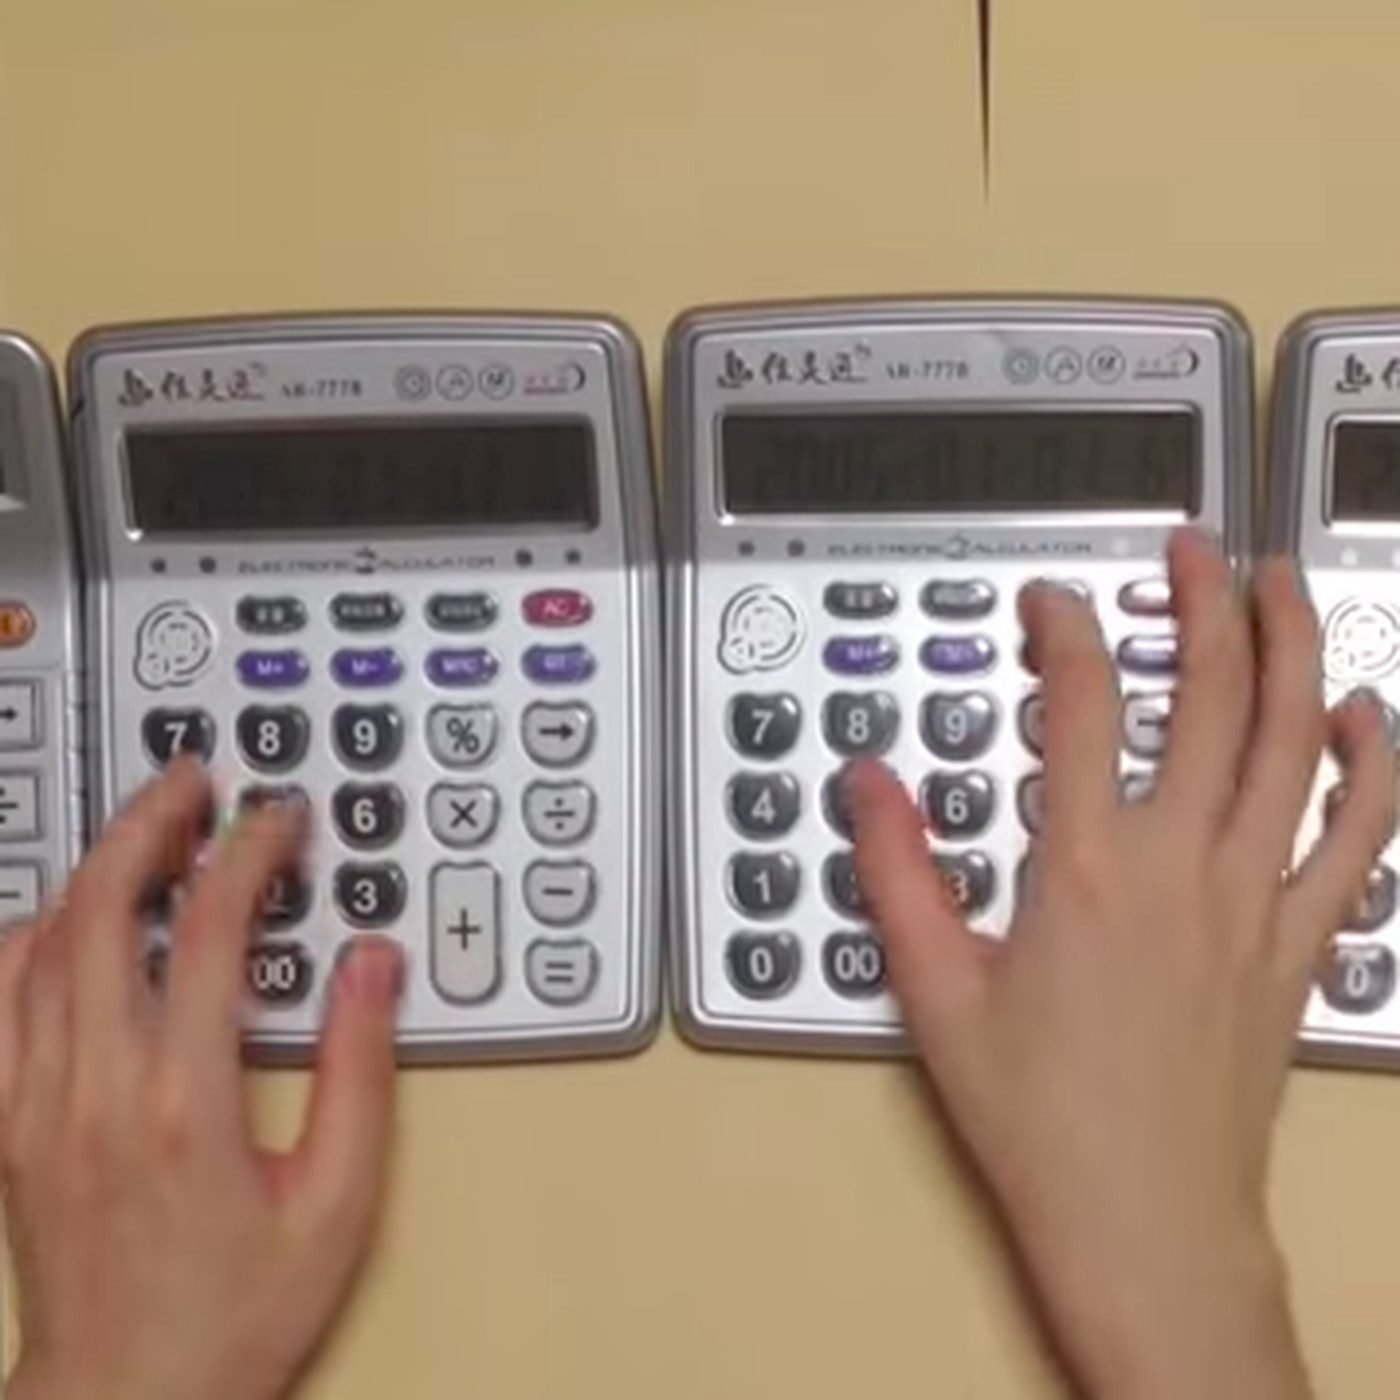 Calculators are the latest instrument used in creative new